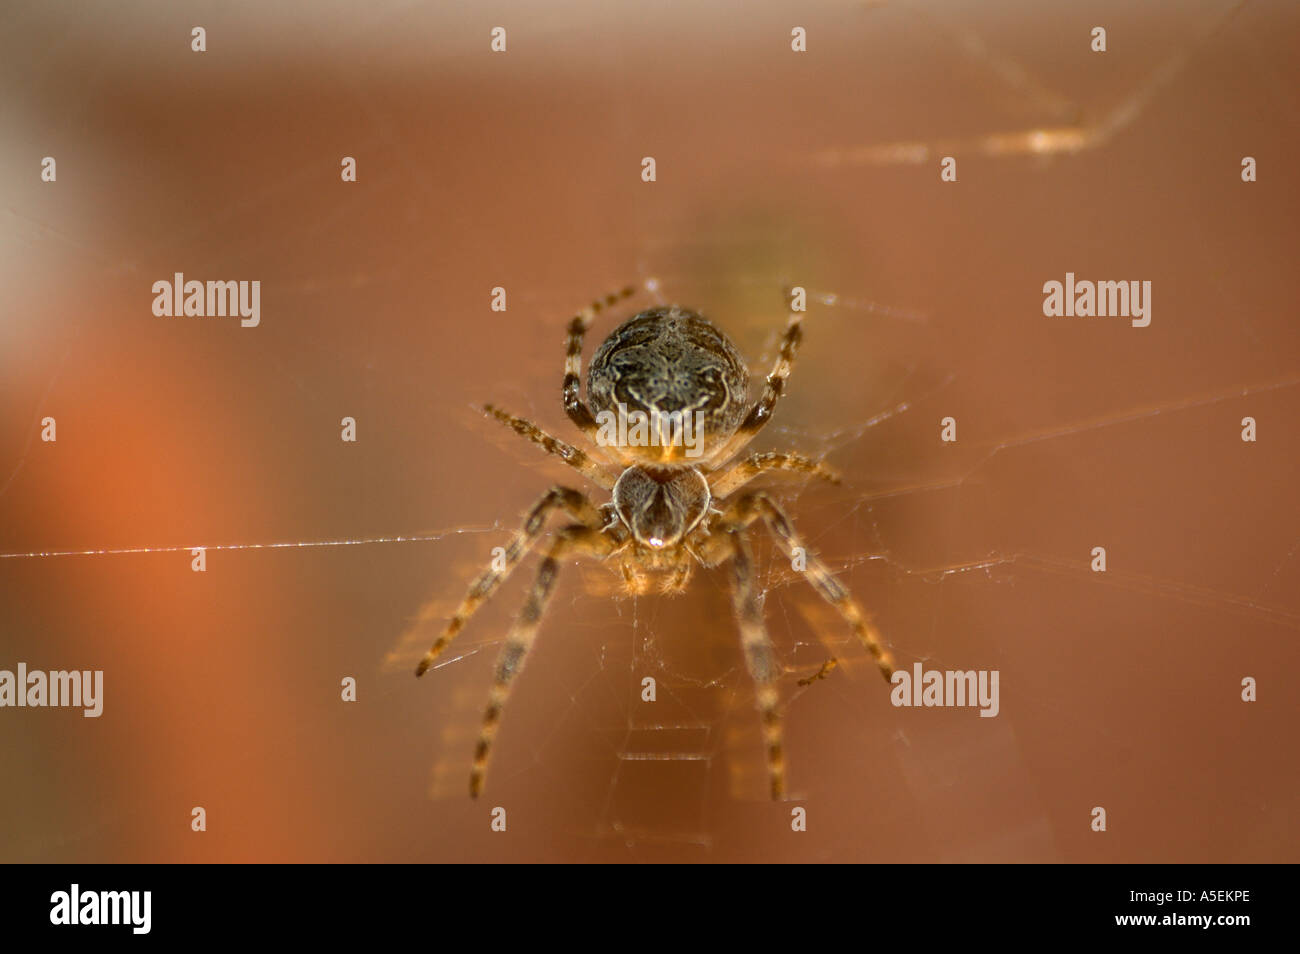 Walnut orb weaver spider - Stock Image